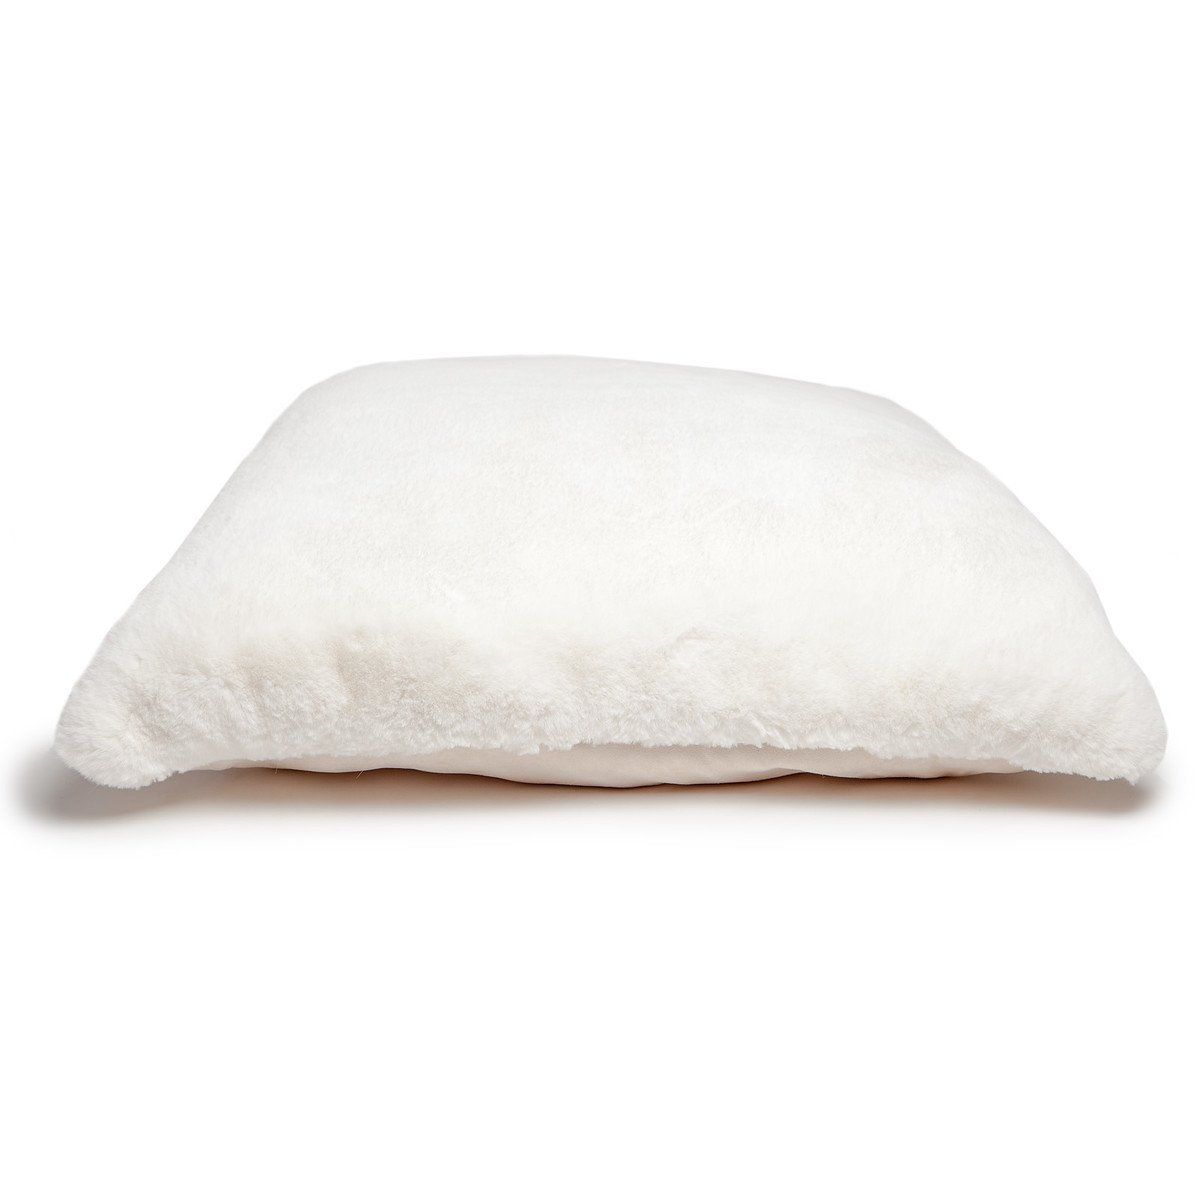 Adorable Dog Bed in Cream